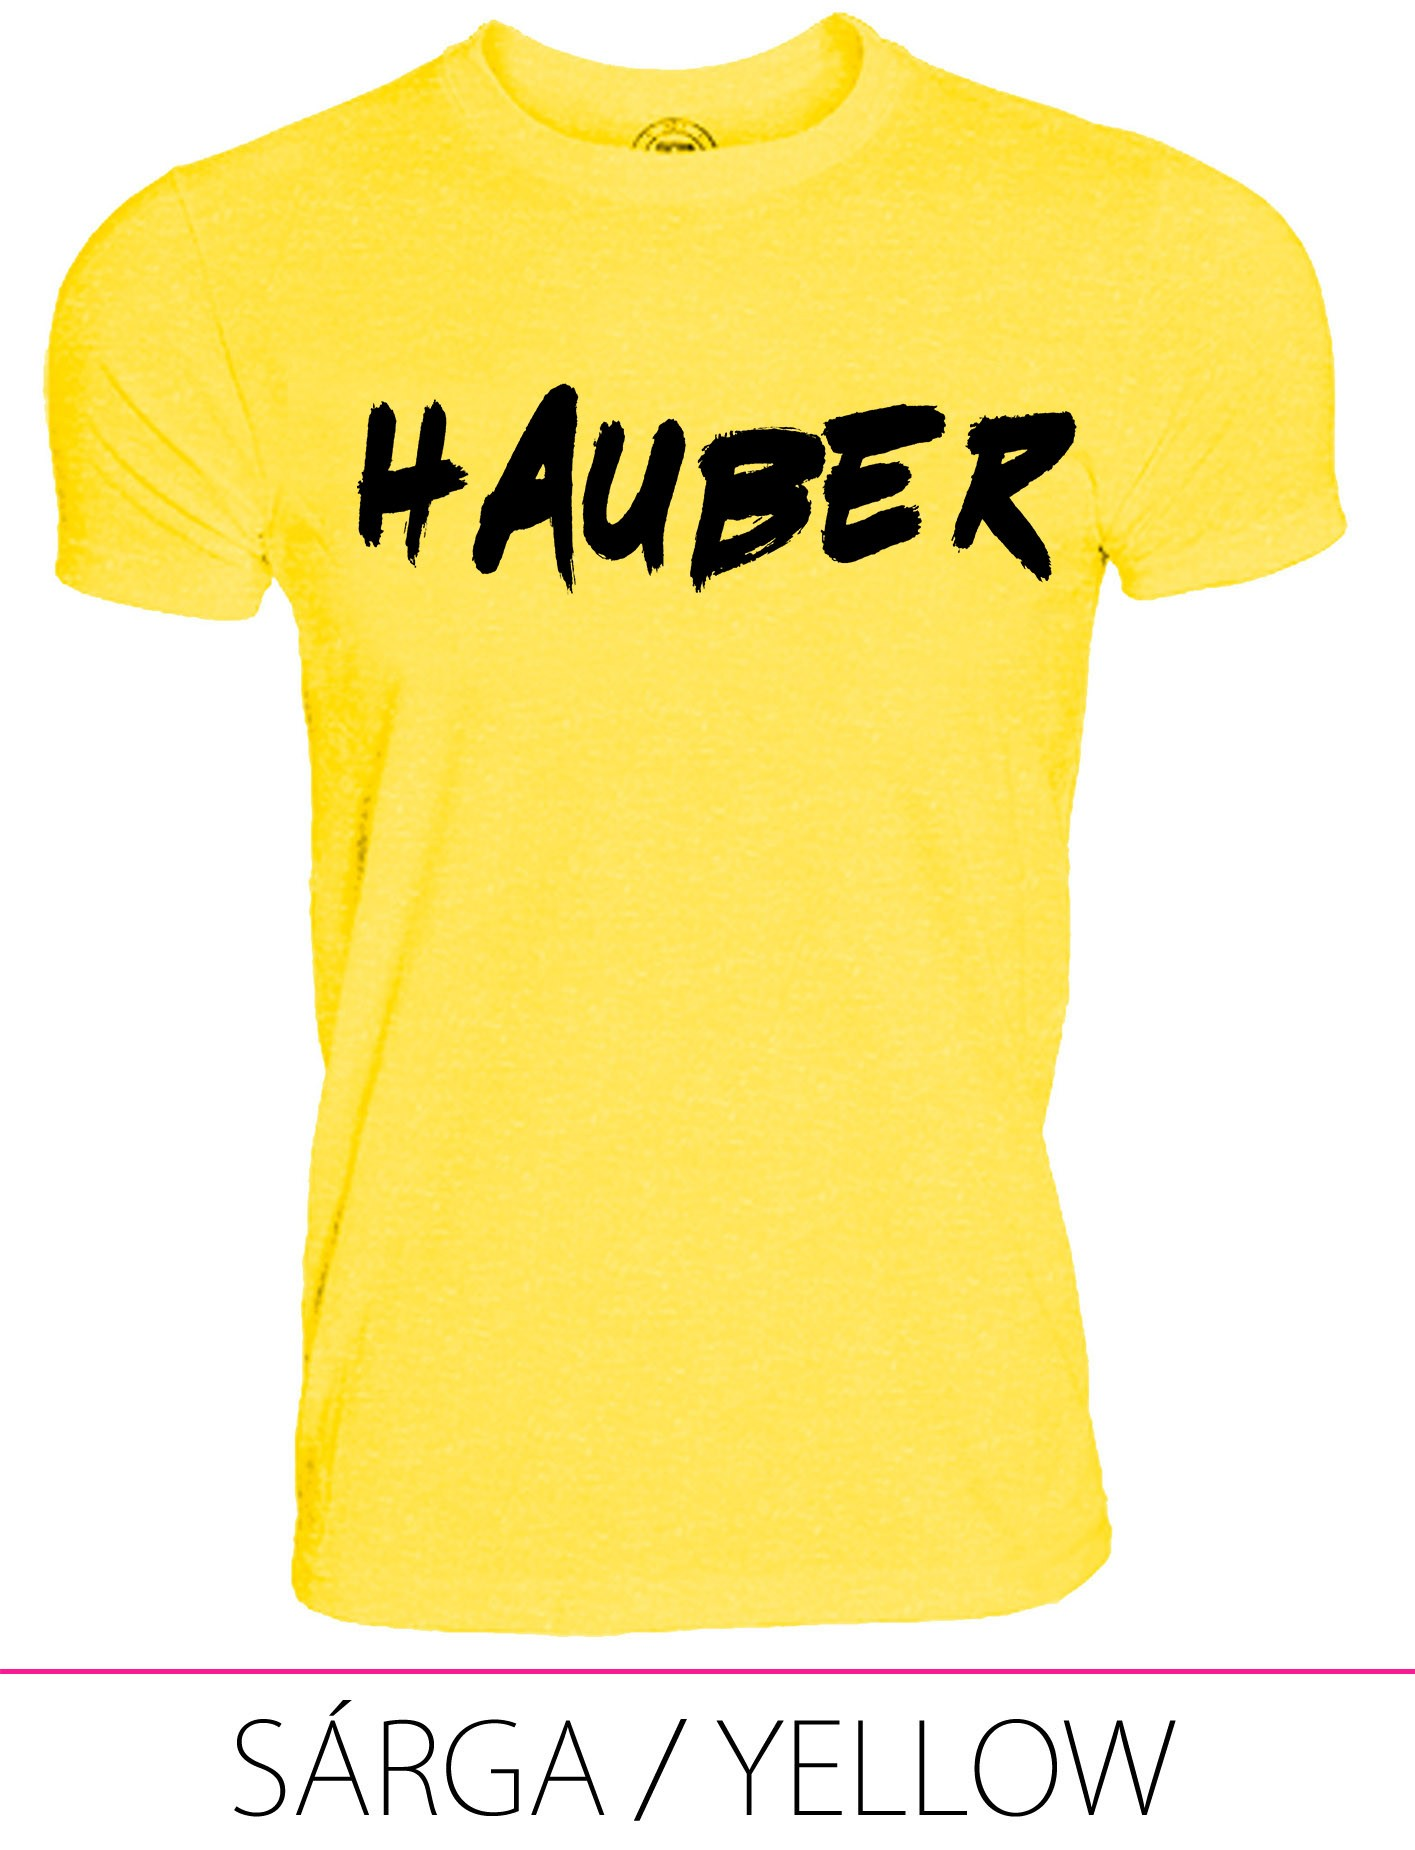 KIDS CREW NECK T-SHIRT HAUBER YELLOW